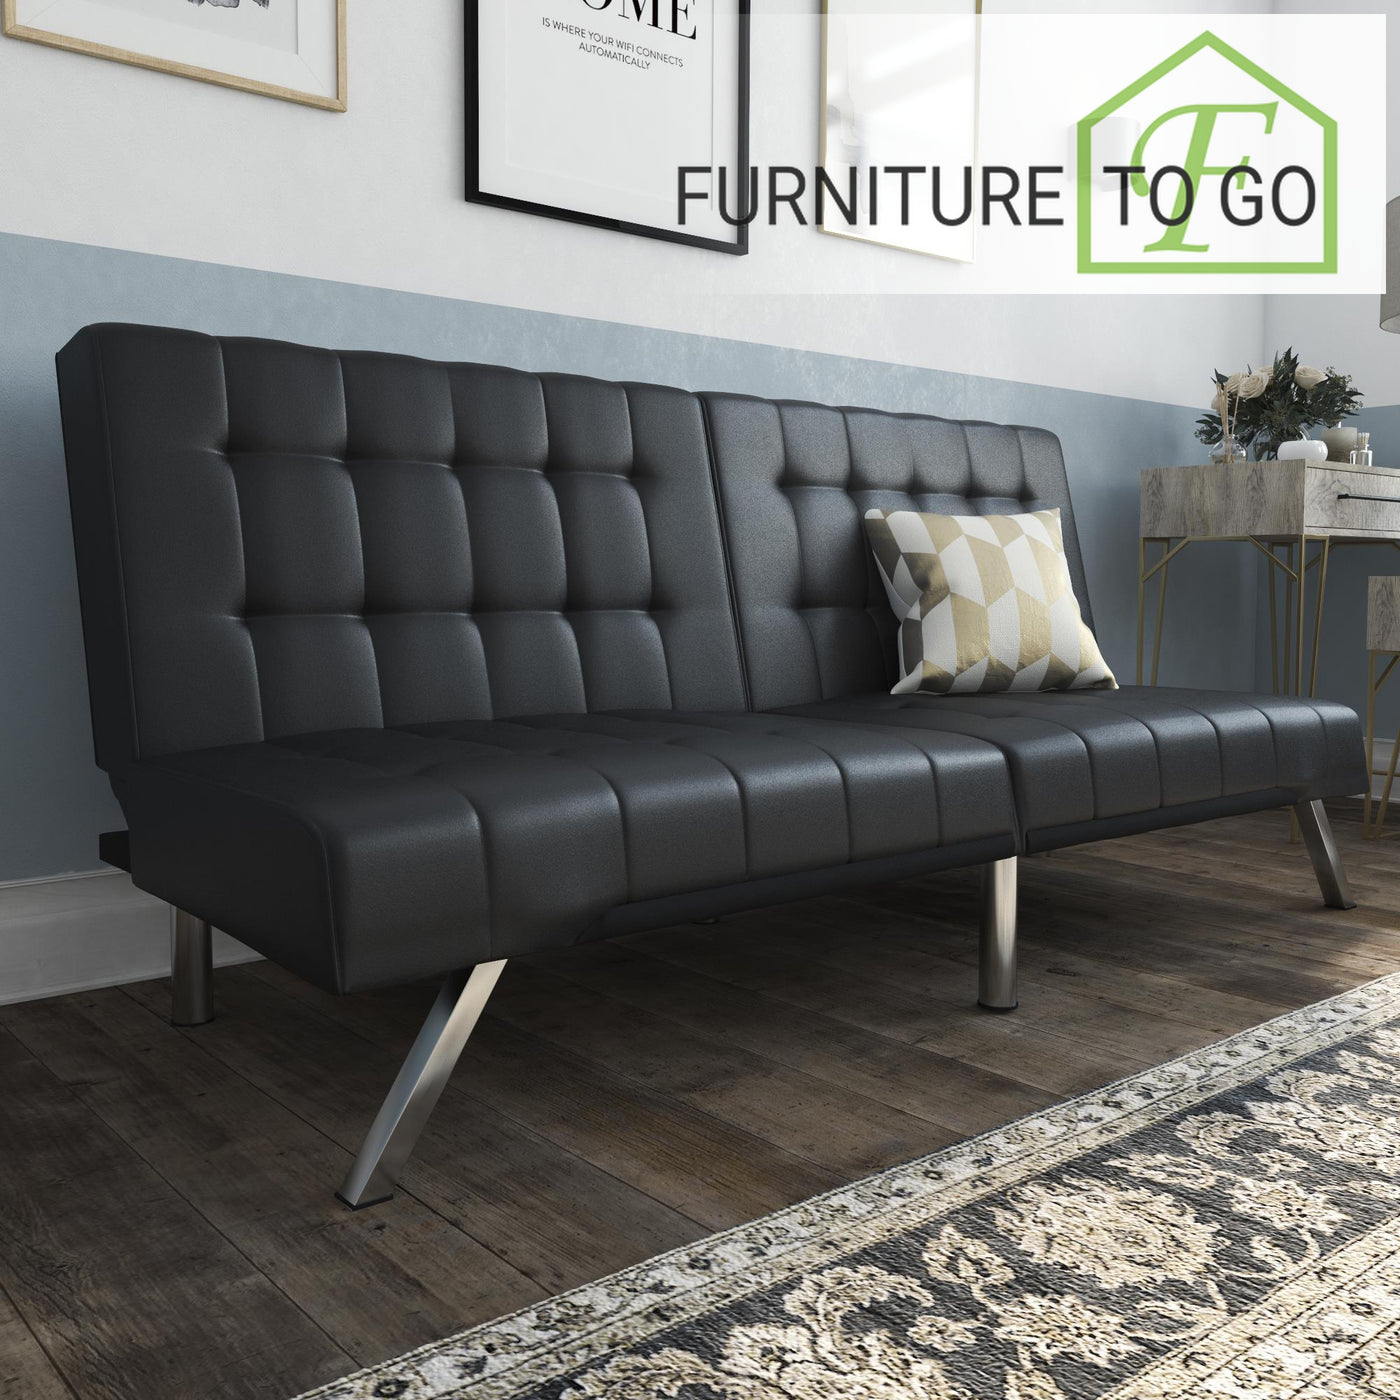 Clearance Furniture in Dallas 149.99 Black Leather – Furniture To Go